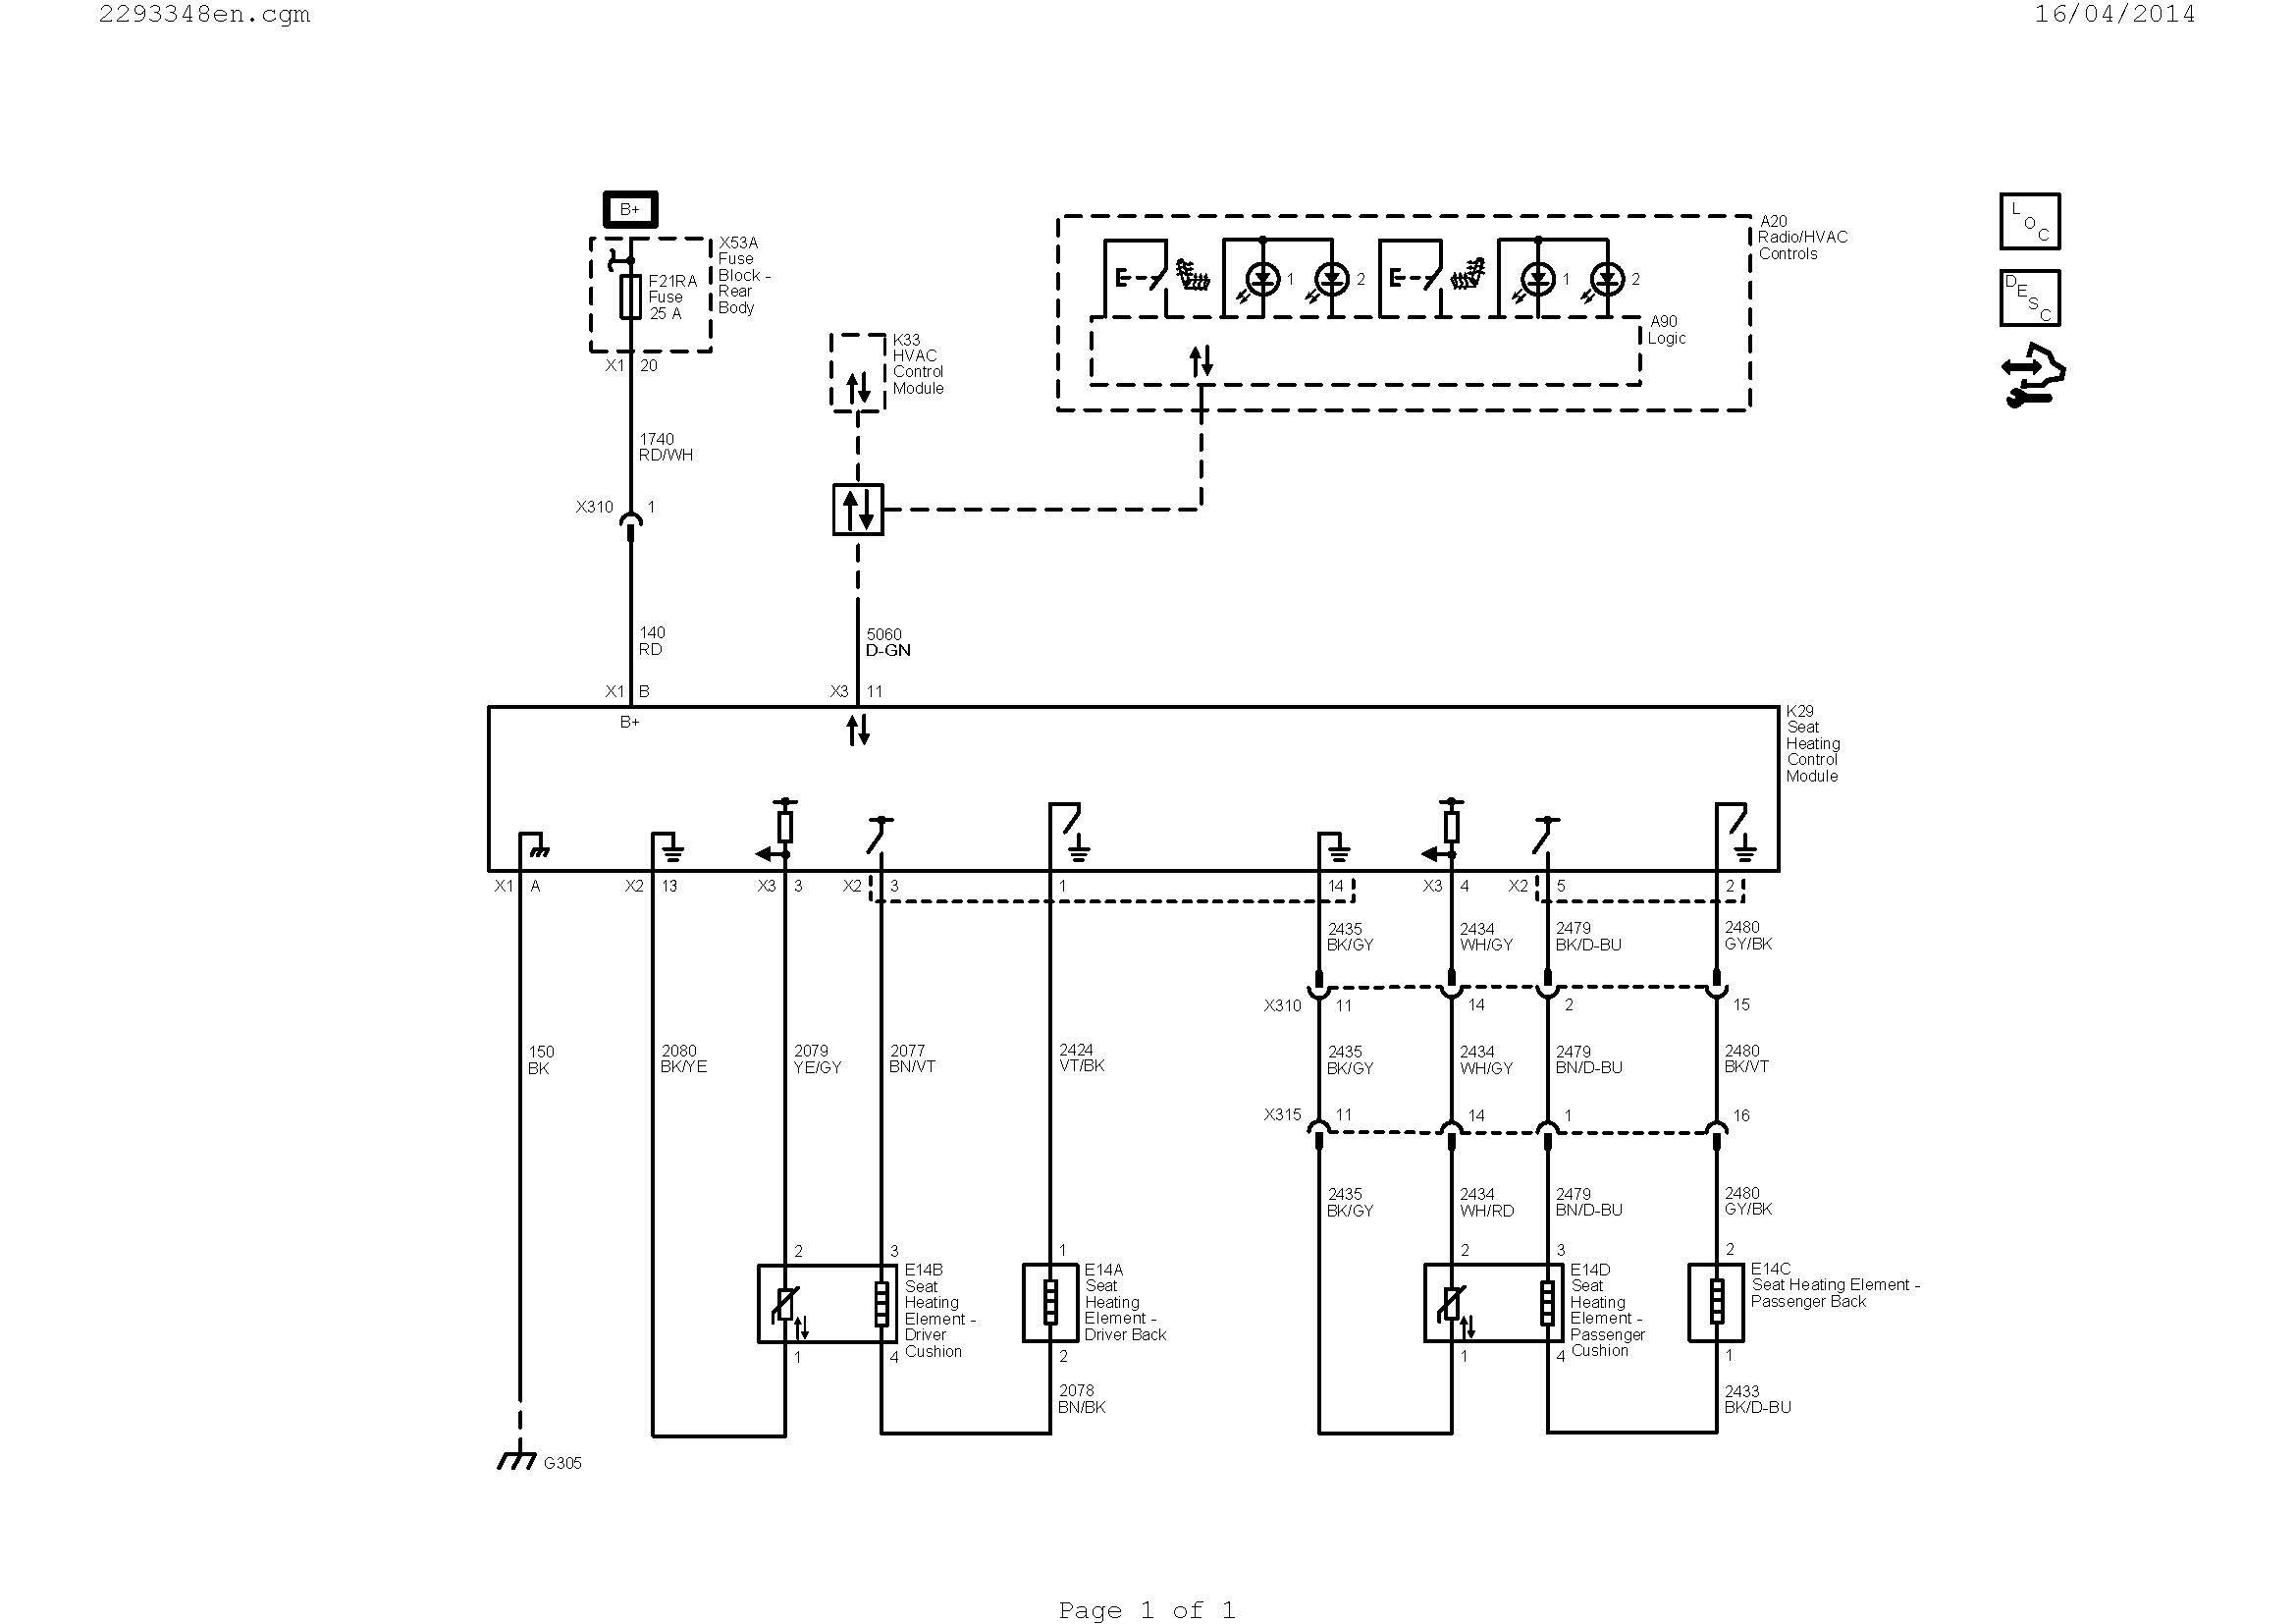 outside ac unit wiring diagram Collection-ac wiring diagram Collection Wiring Diagram For A Relay Switch Save Wiring Diagram Ac Valid 13-h